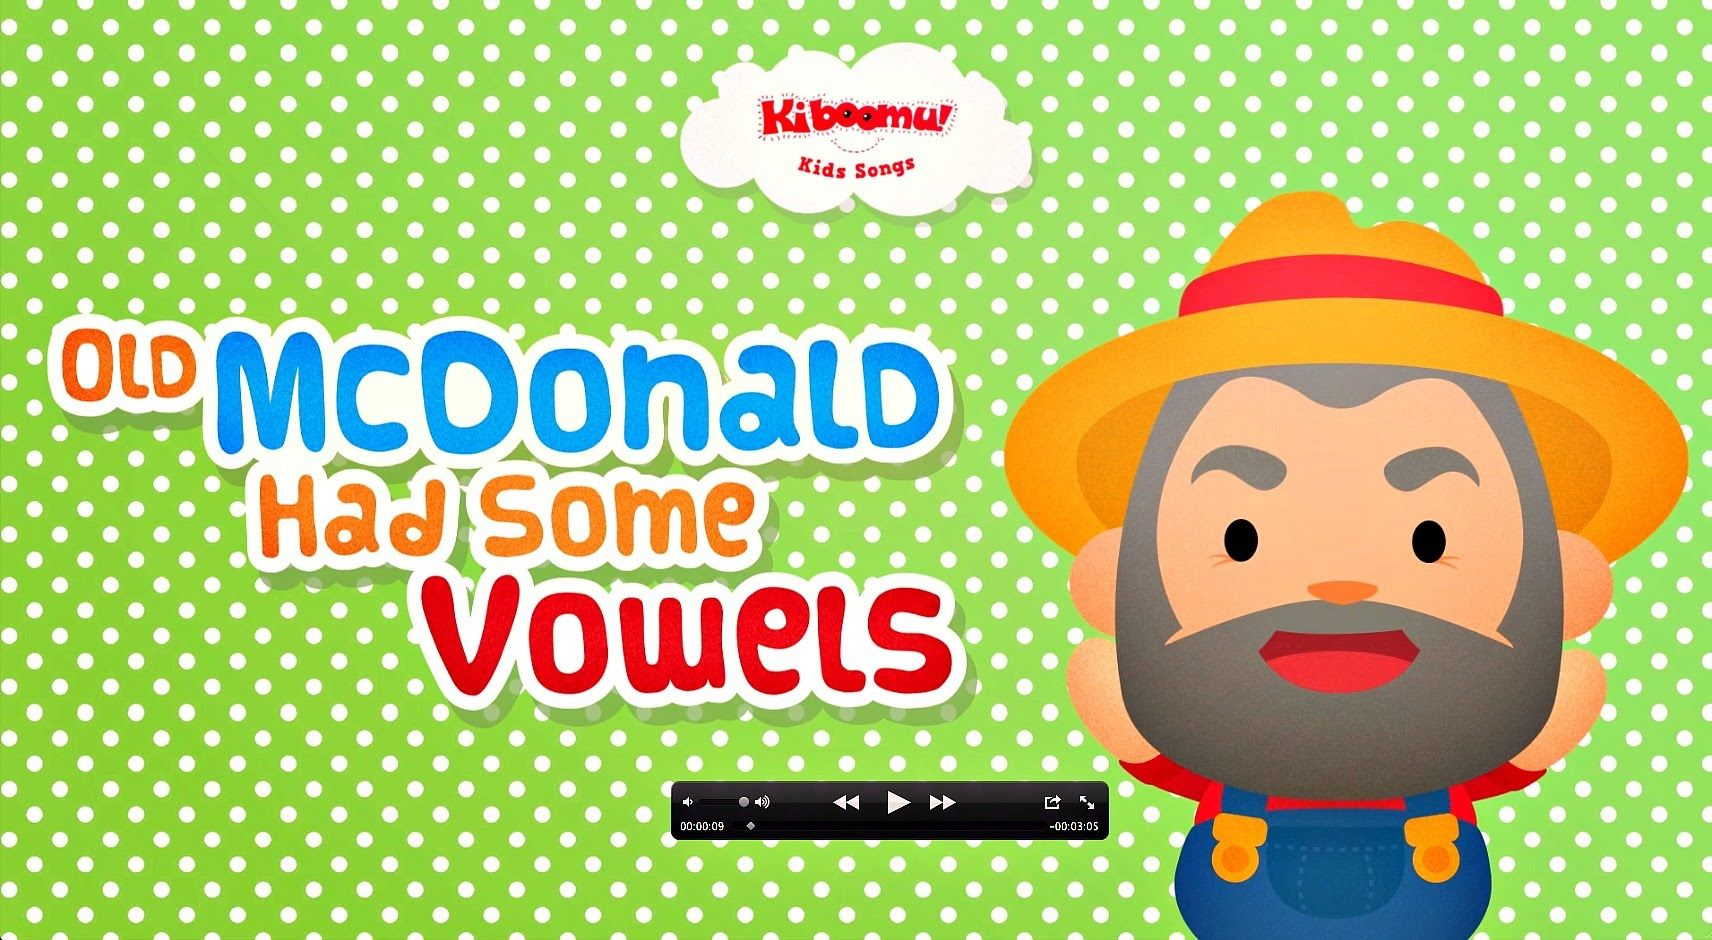 Aeiou Learn Short Vowel And Long Vowel Sounds With Old